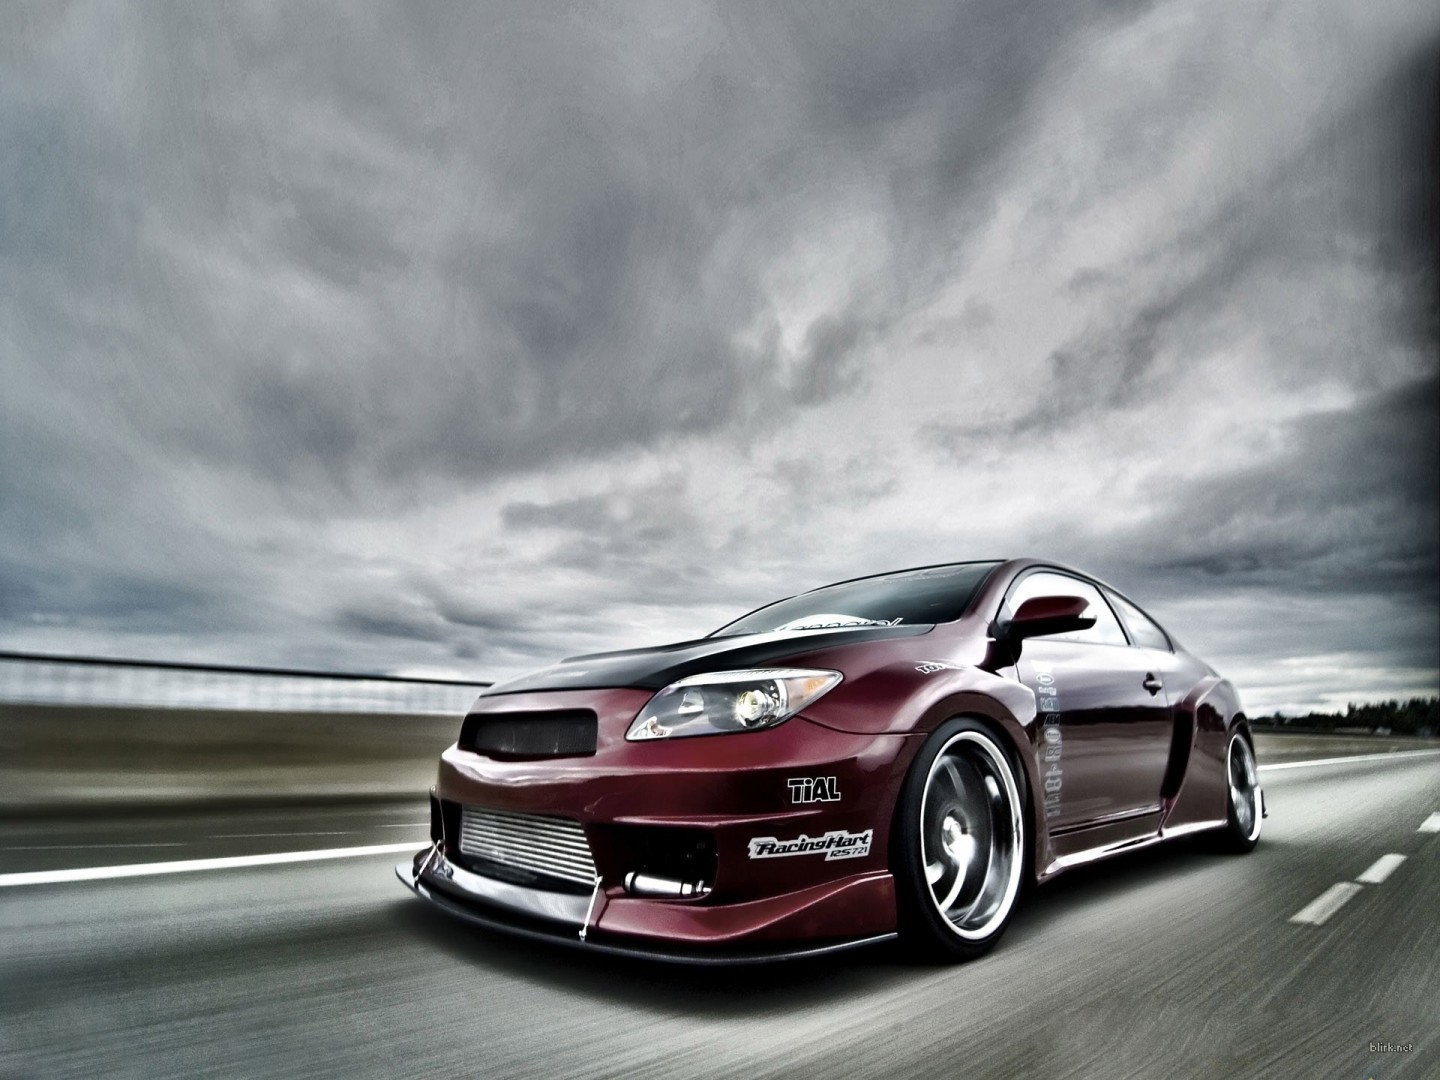 Cool Modified Cars Wallpapers Cool Toyota Wallpaper 3274 Hdwpro